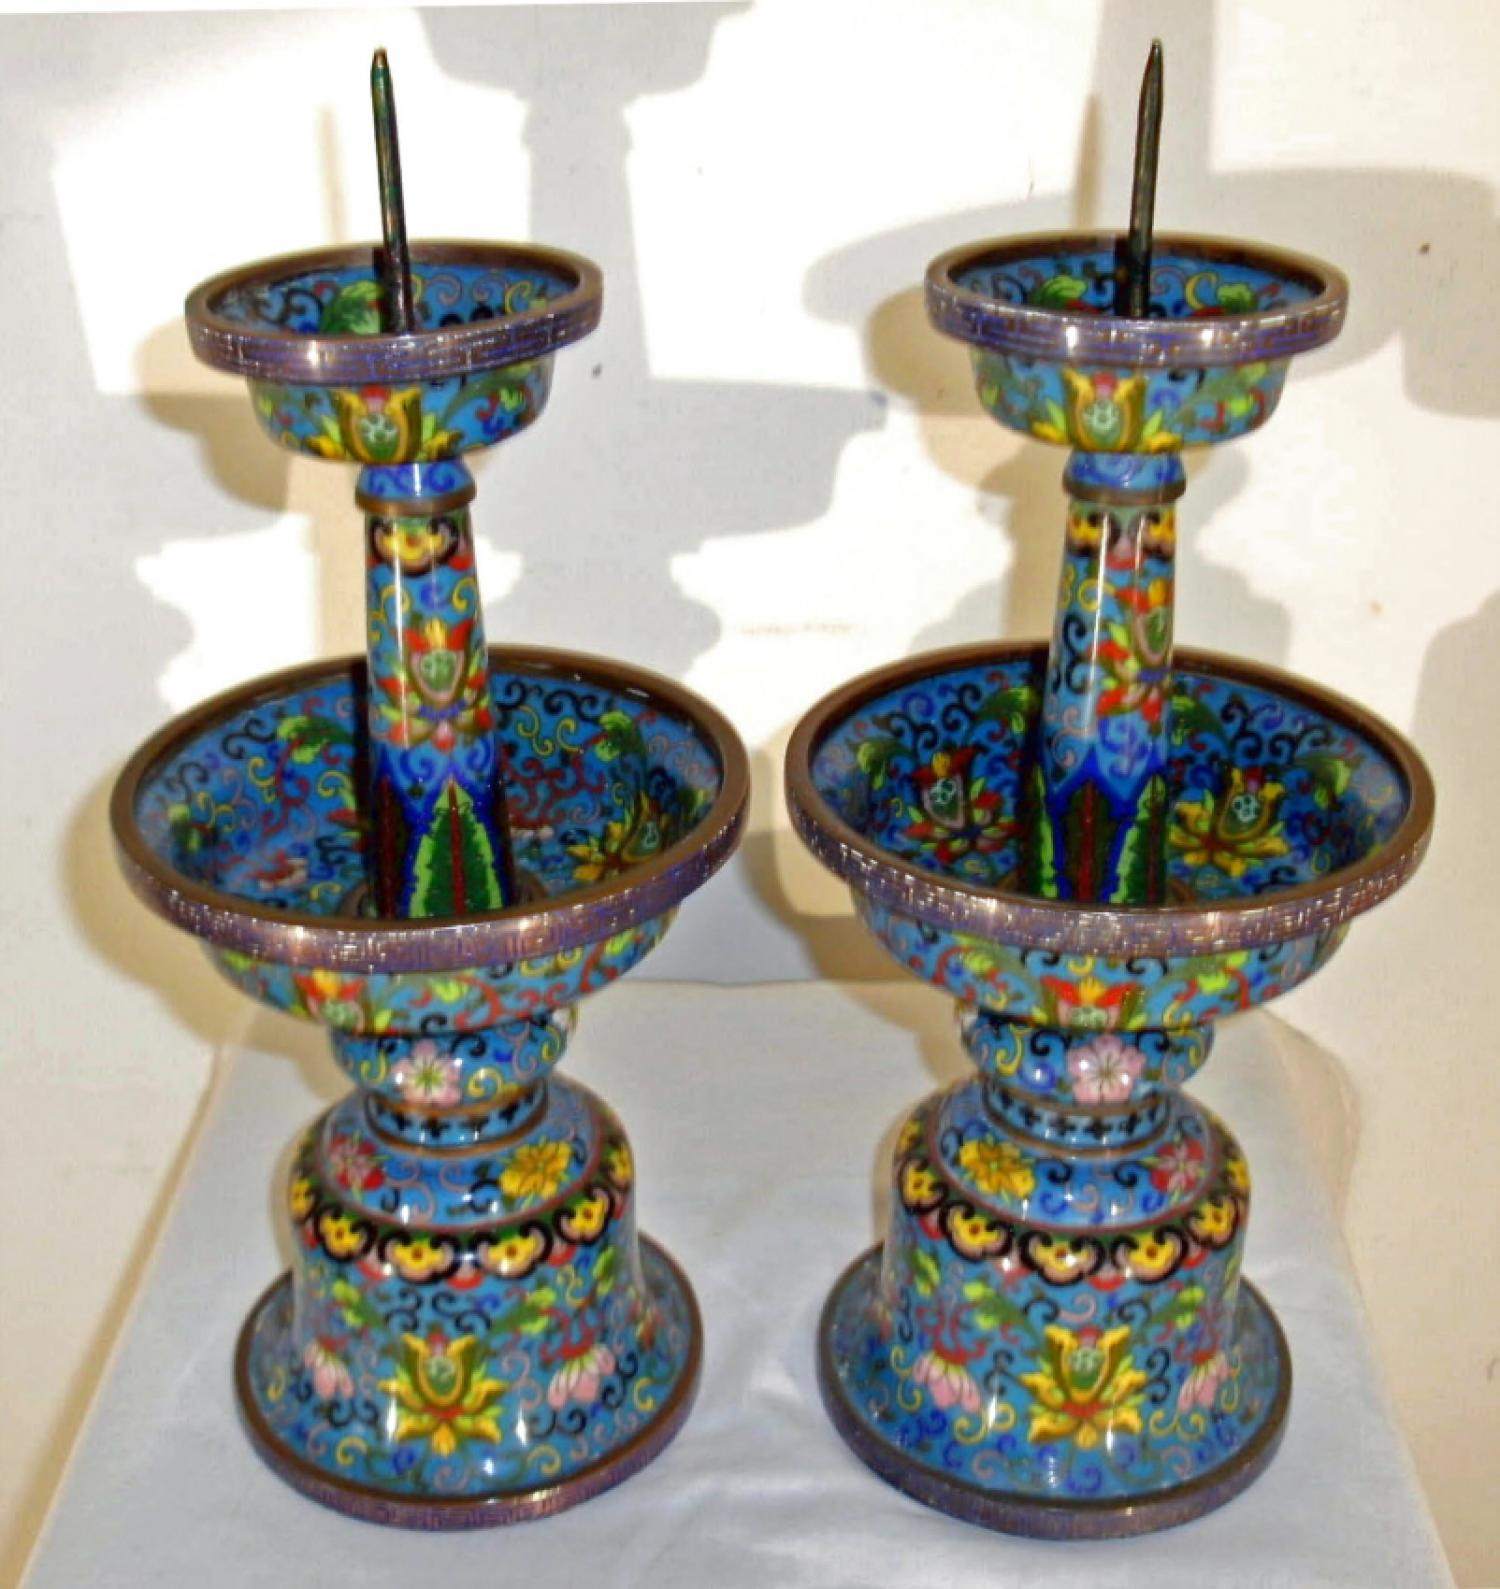 Chinese cloisonne enamel candle holders c1800